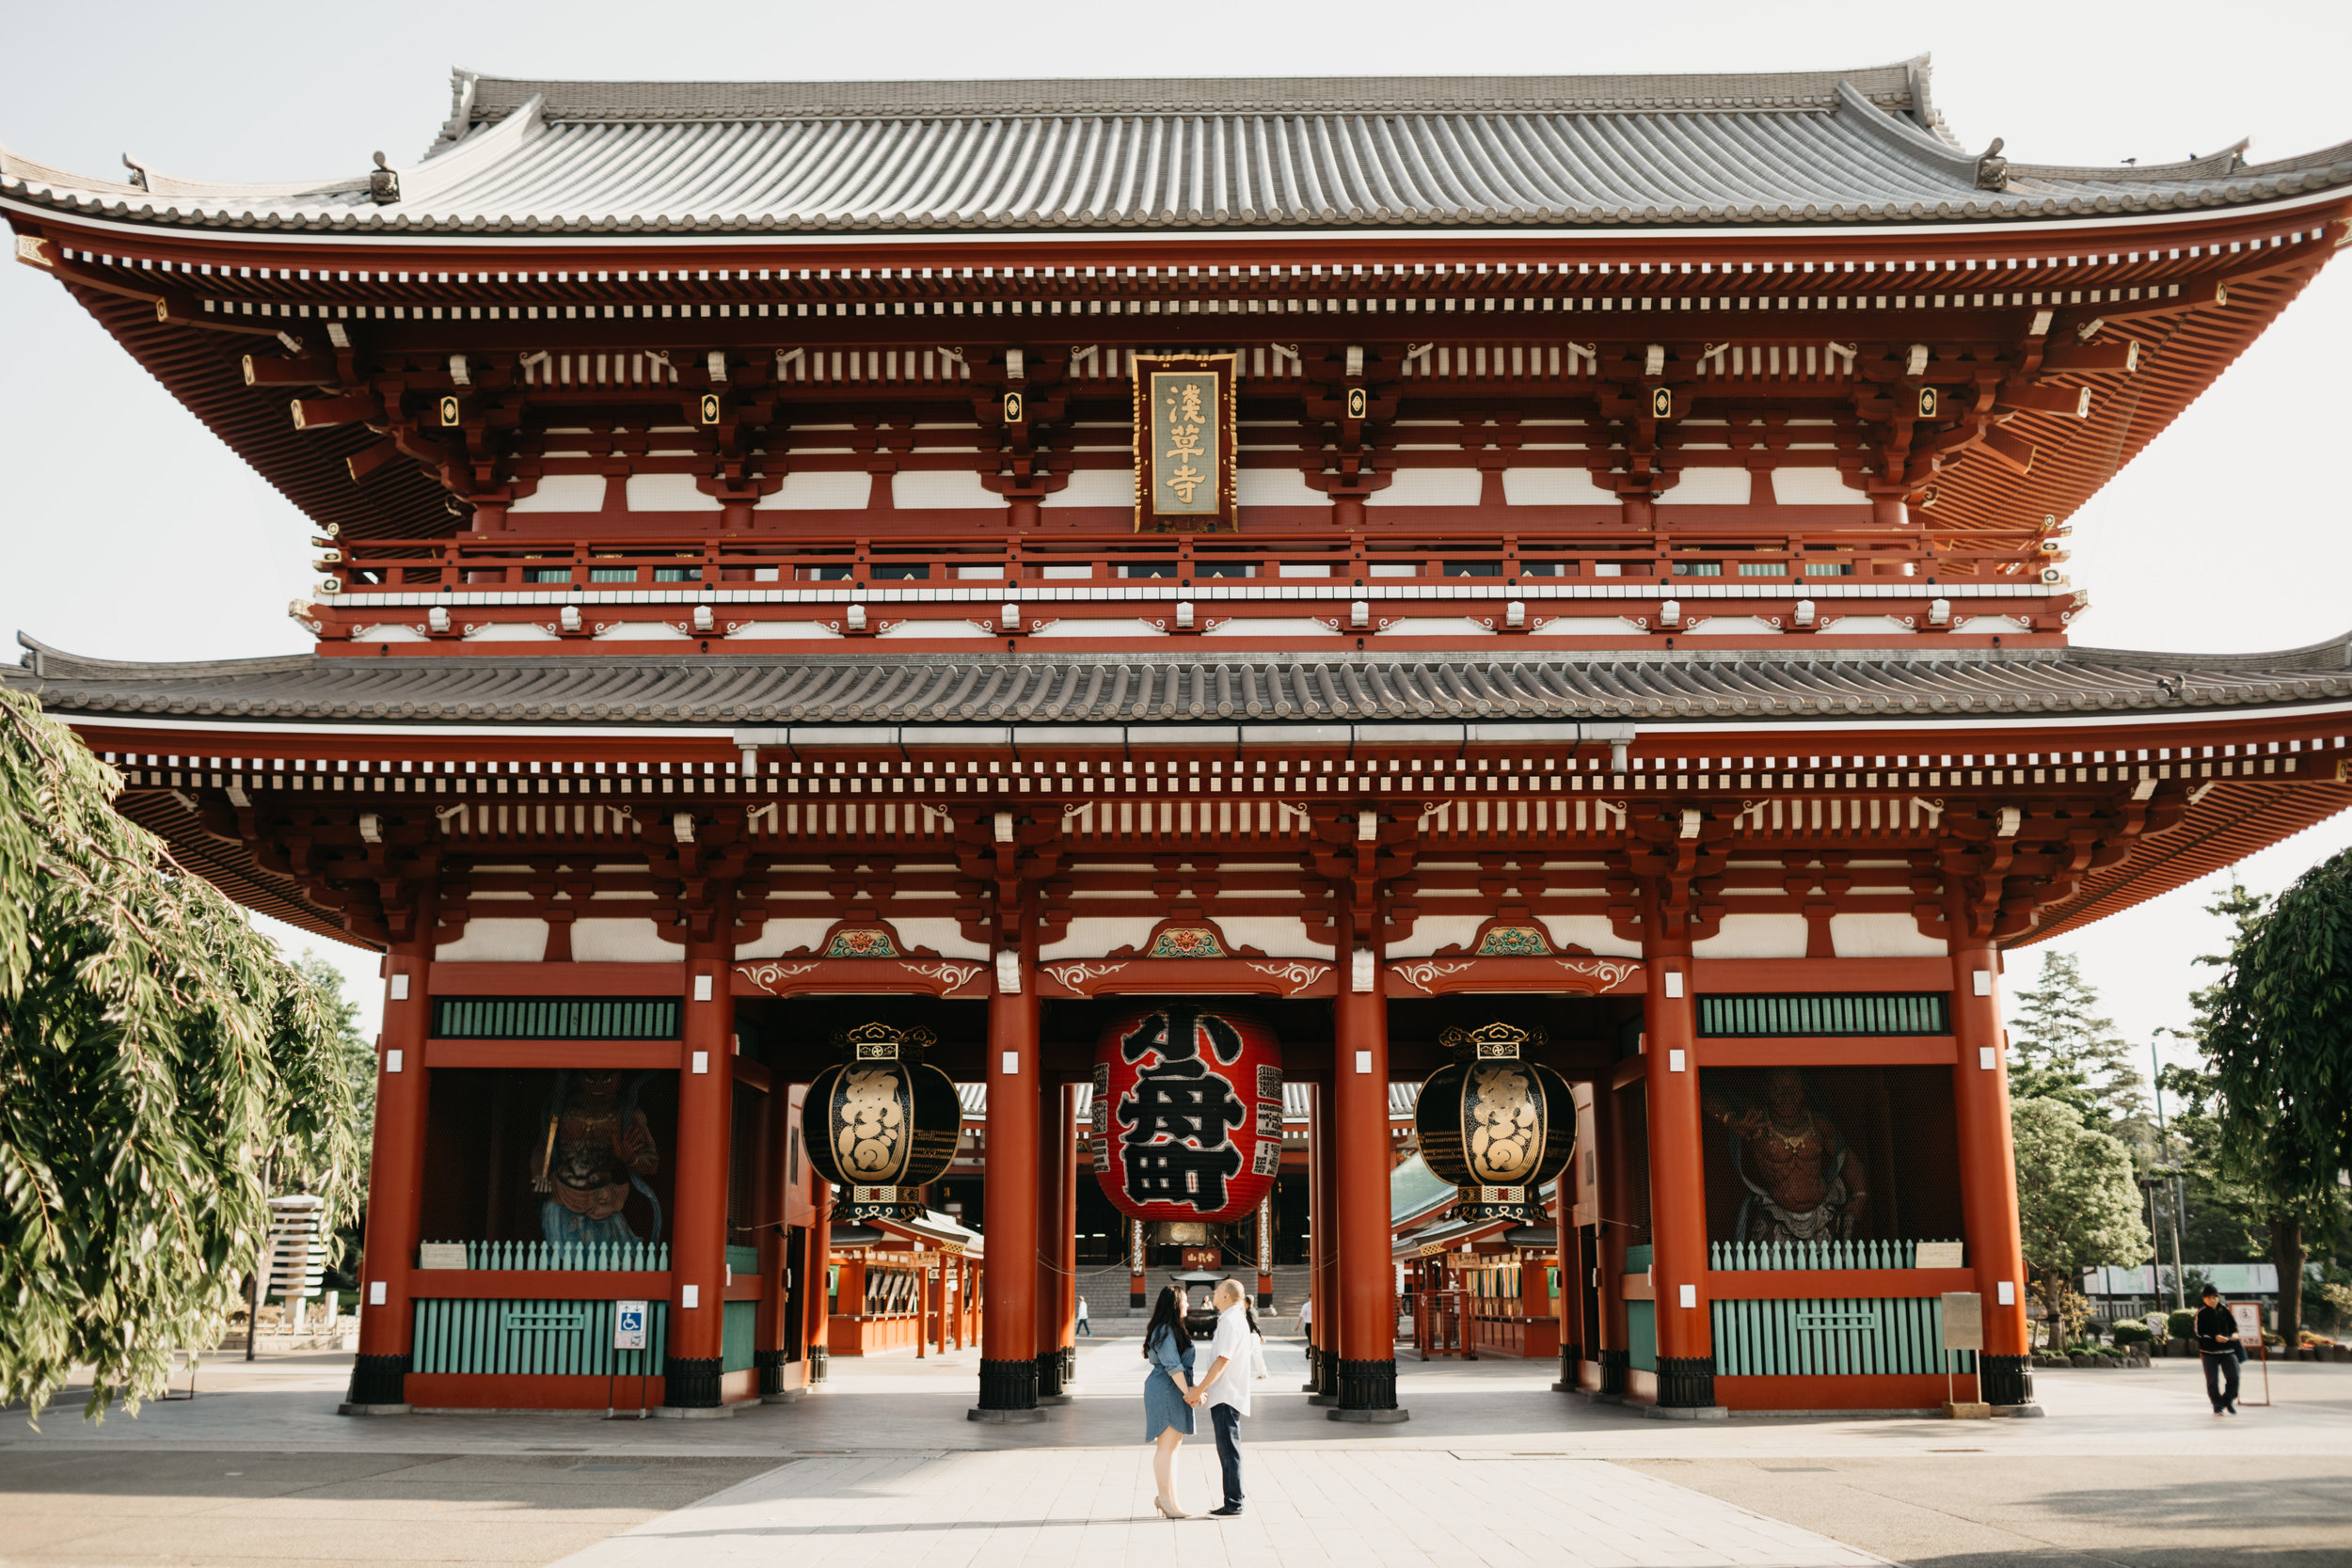 tokyo_sensoji_engagement_session_pictures_by_samantha_look-18.jpg